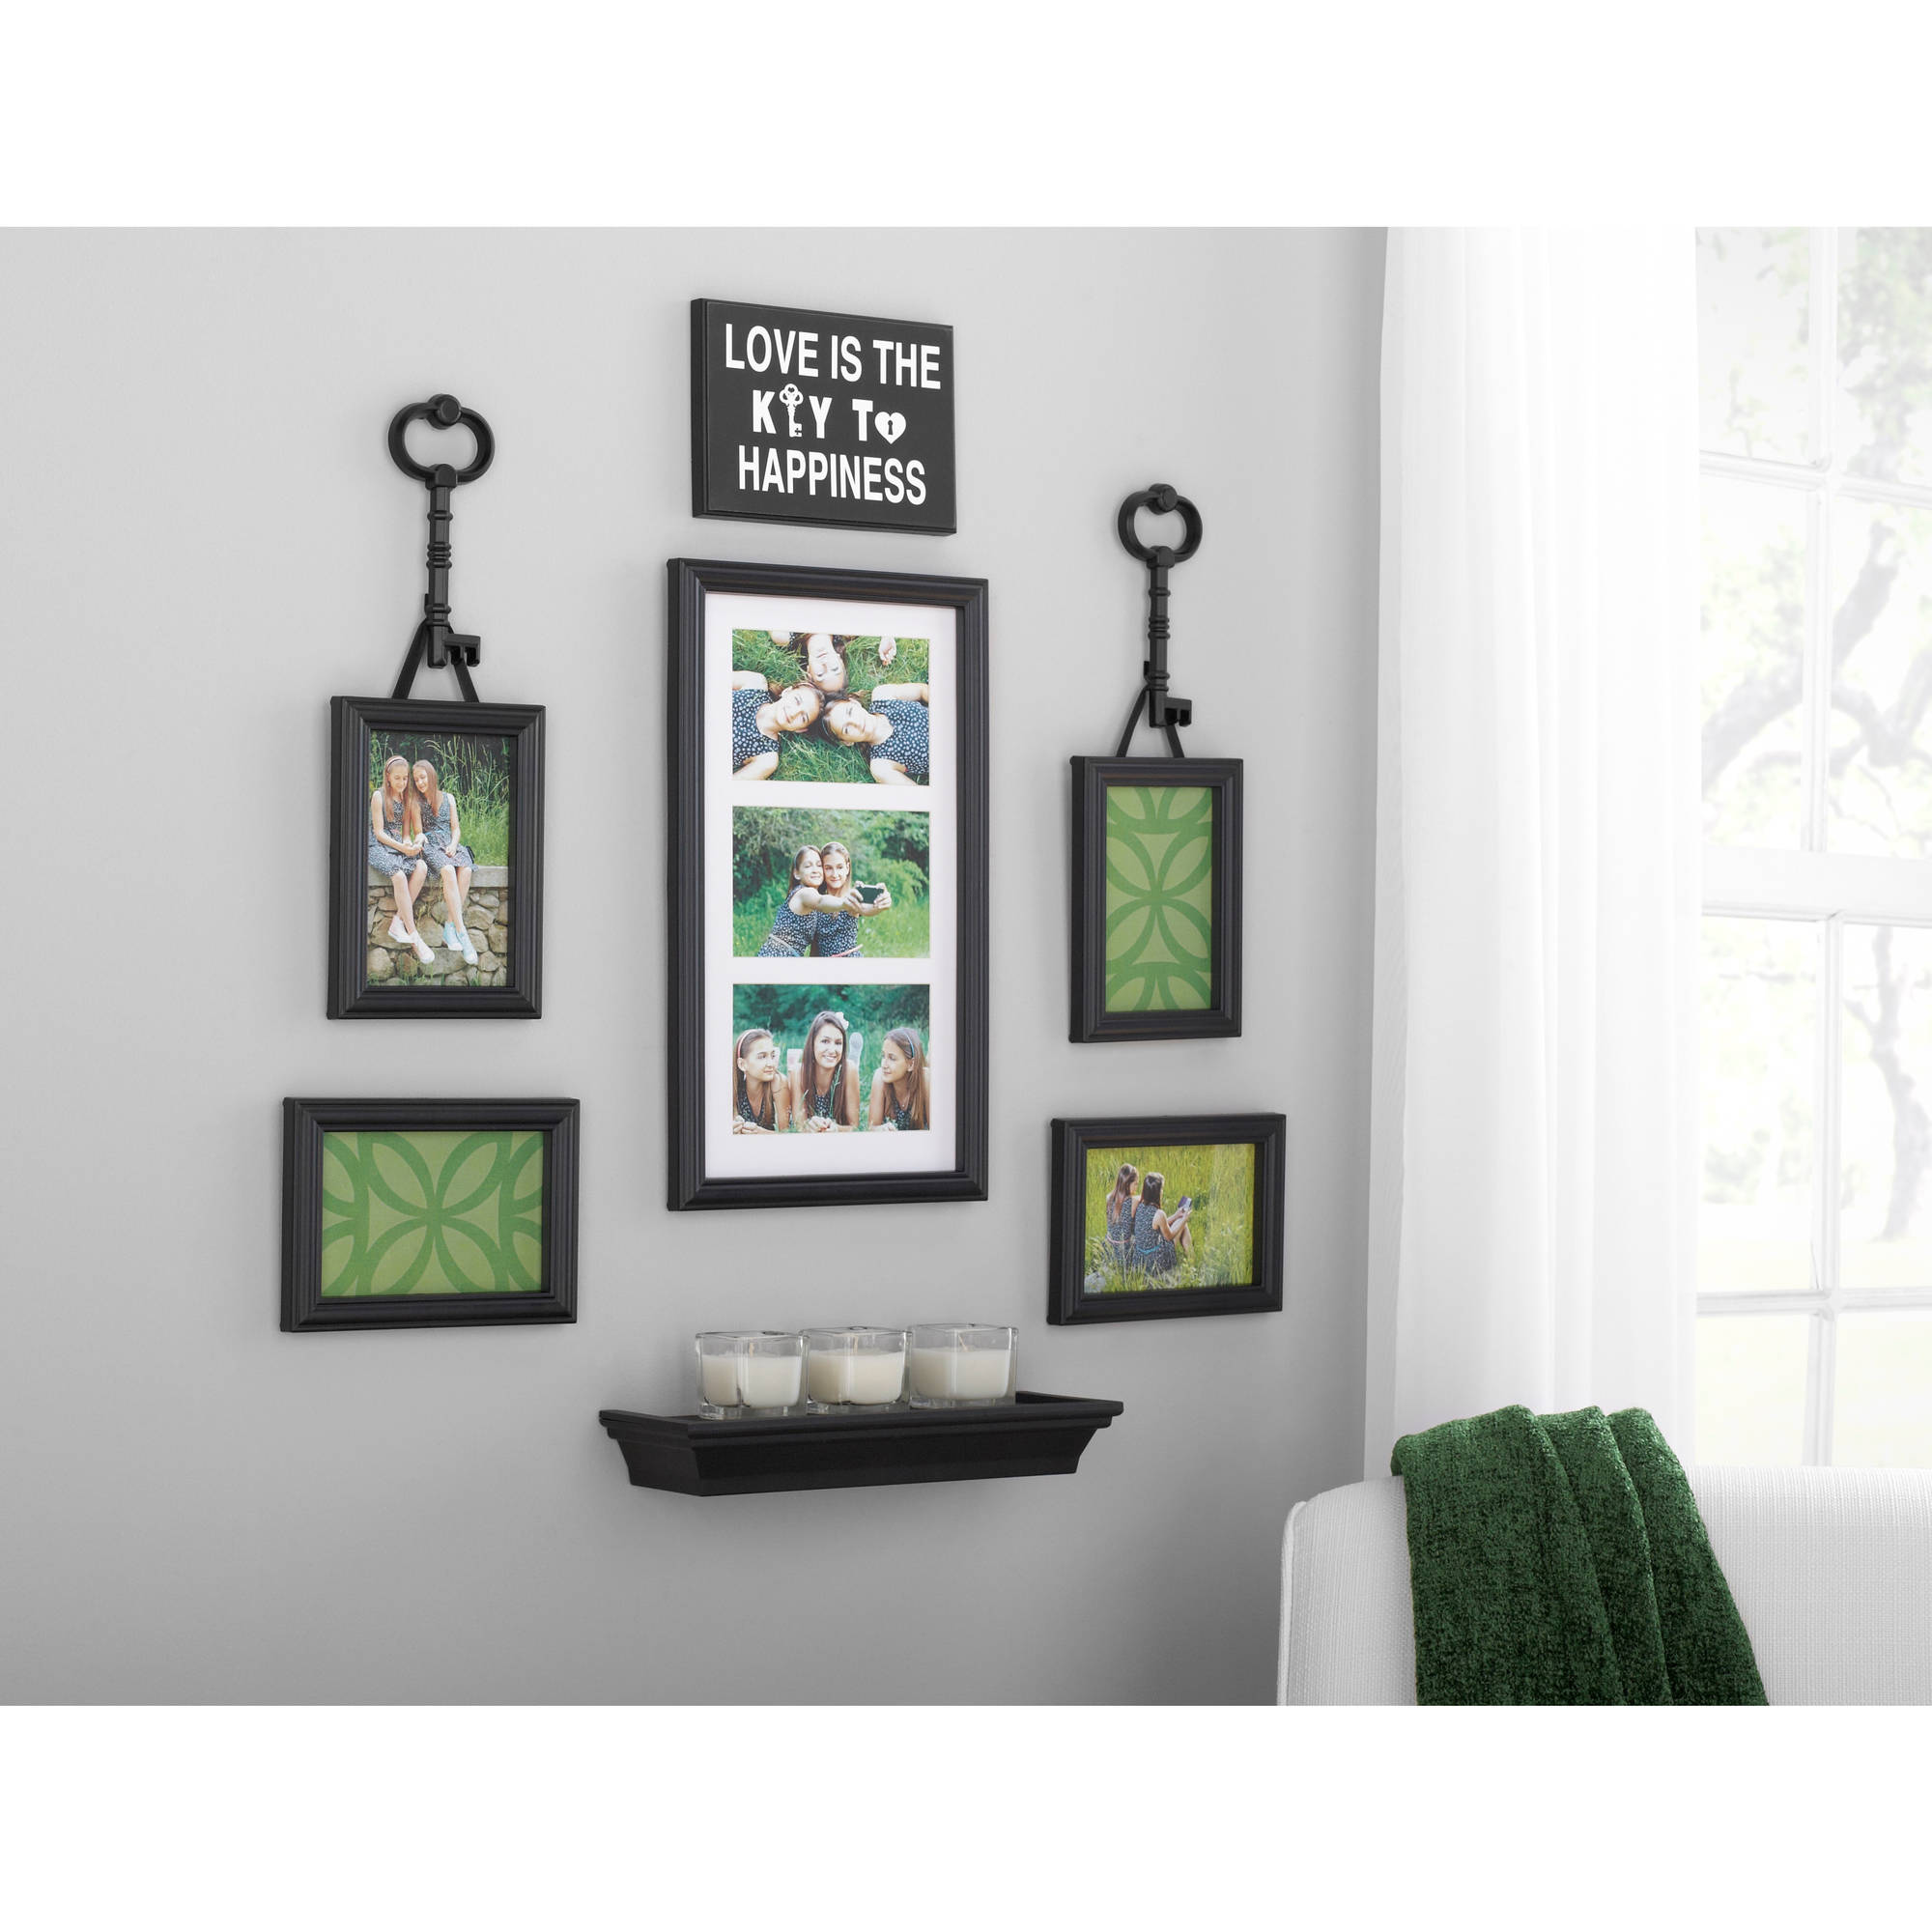 Mainstays 9 piece key expression wall frame set walmart jeuxipadfo Gallery